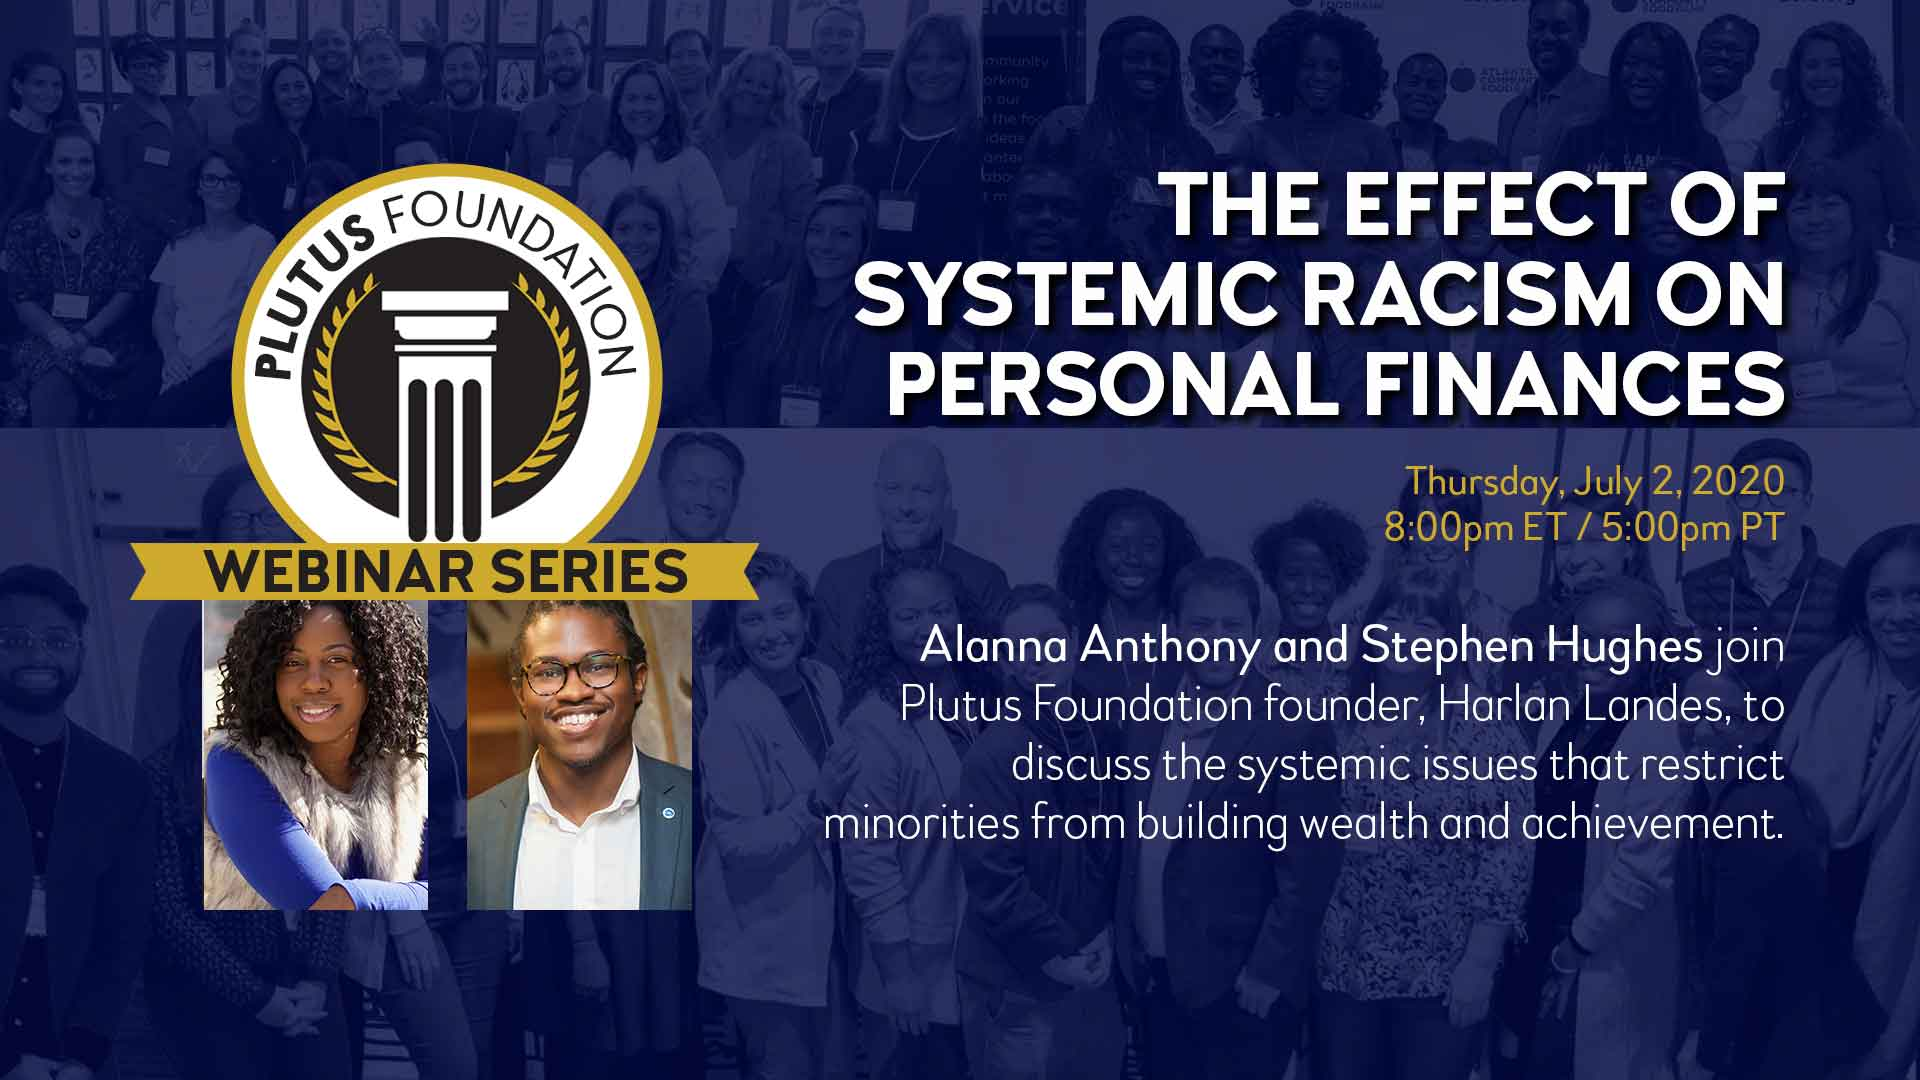 The Effect of Systemic Racism on Personal Finances - webinar cover image